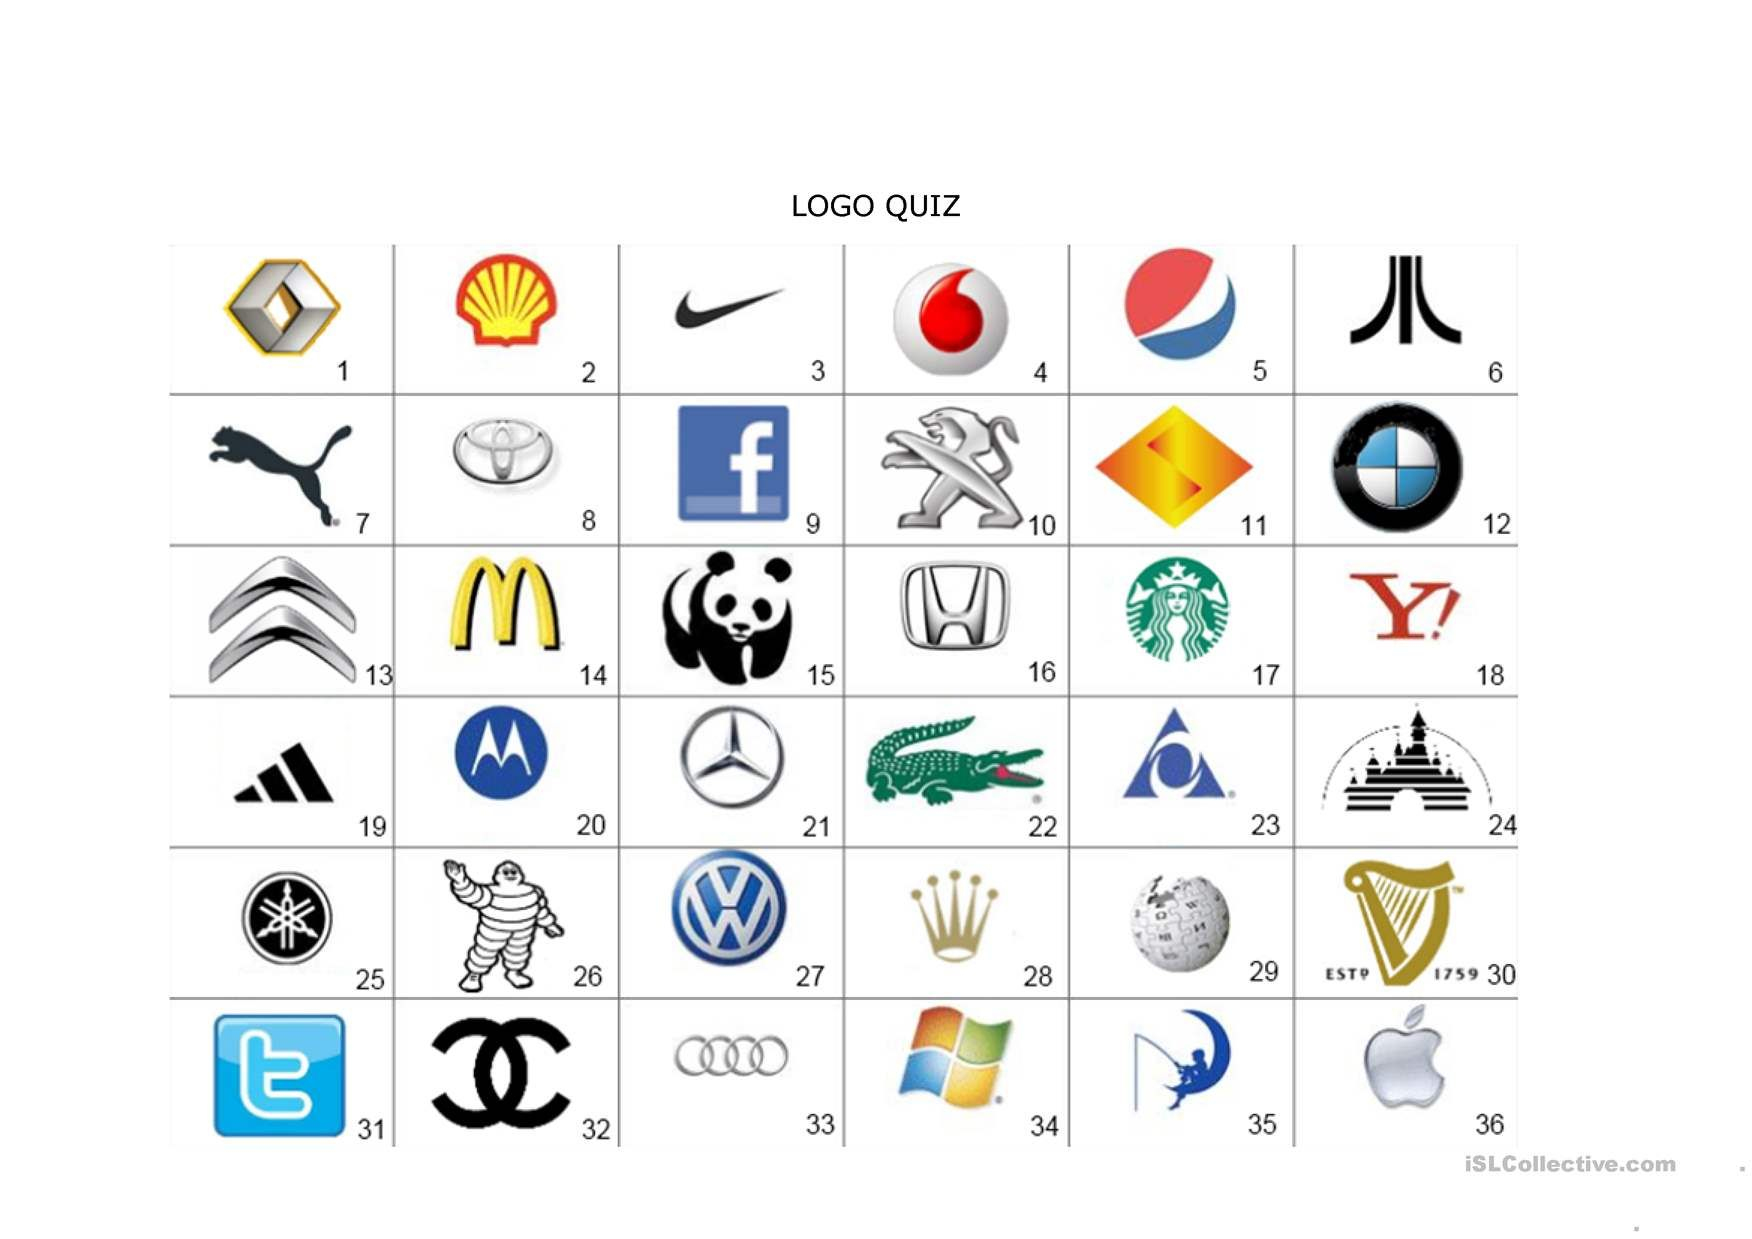 One-Click Print Document | Guess The Logo, Logo Quiz Games